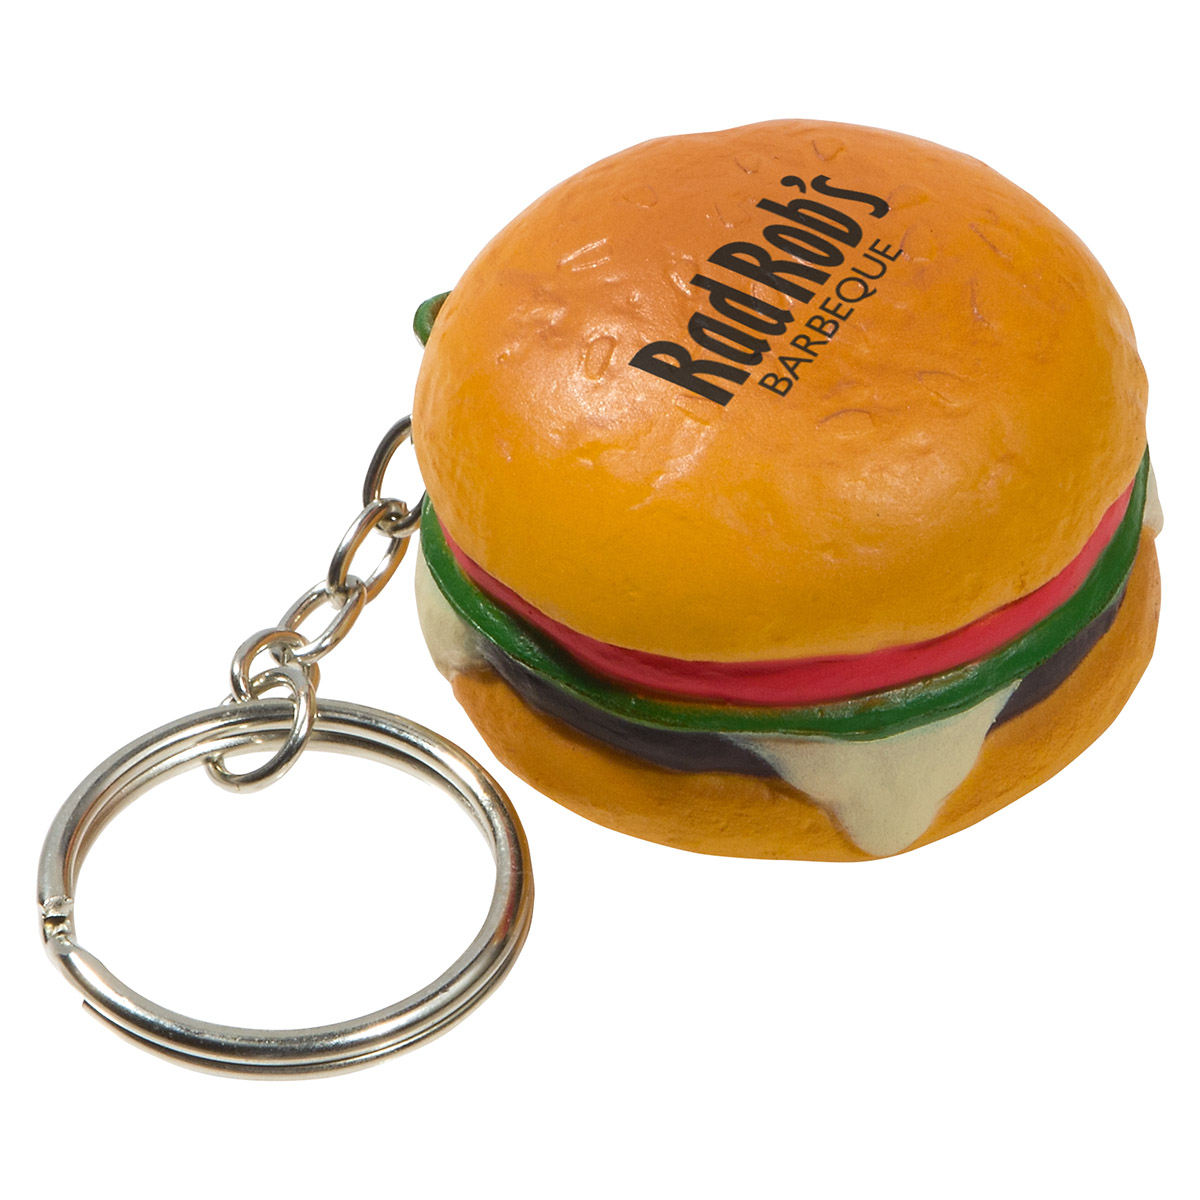 Hamburger Stress Reliever Keychain, LKC-HB07 - 1 Colour Imprint